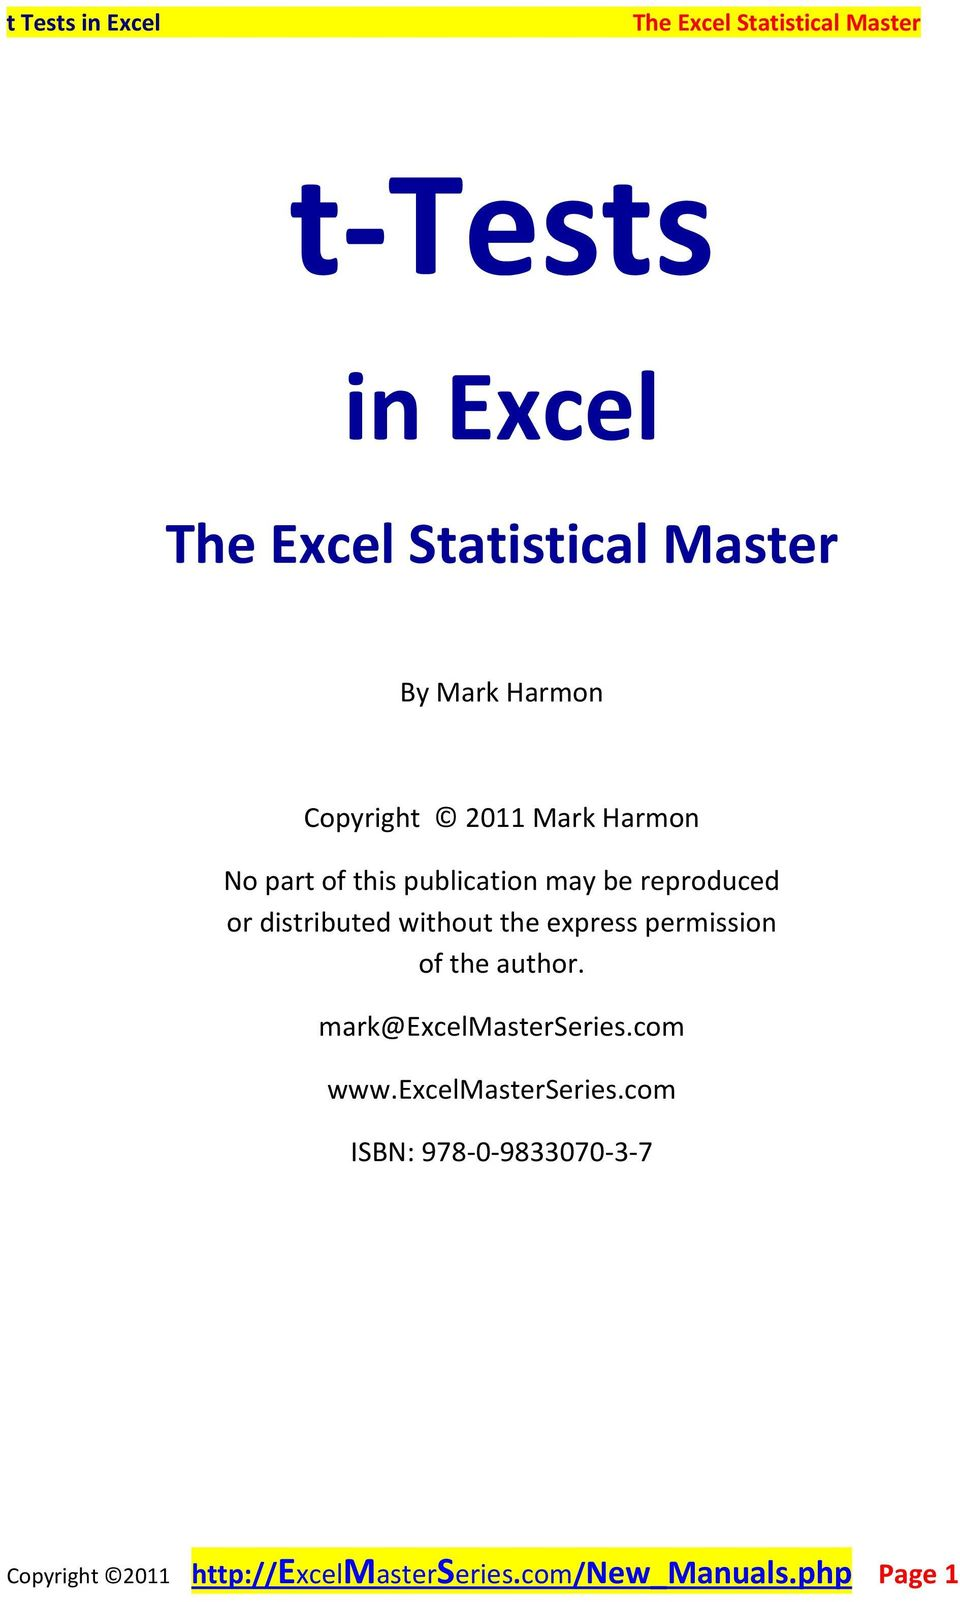 of the author. mark@excelmasterseries.